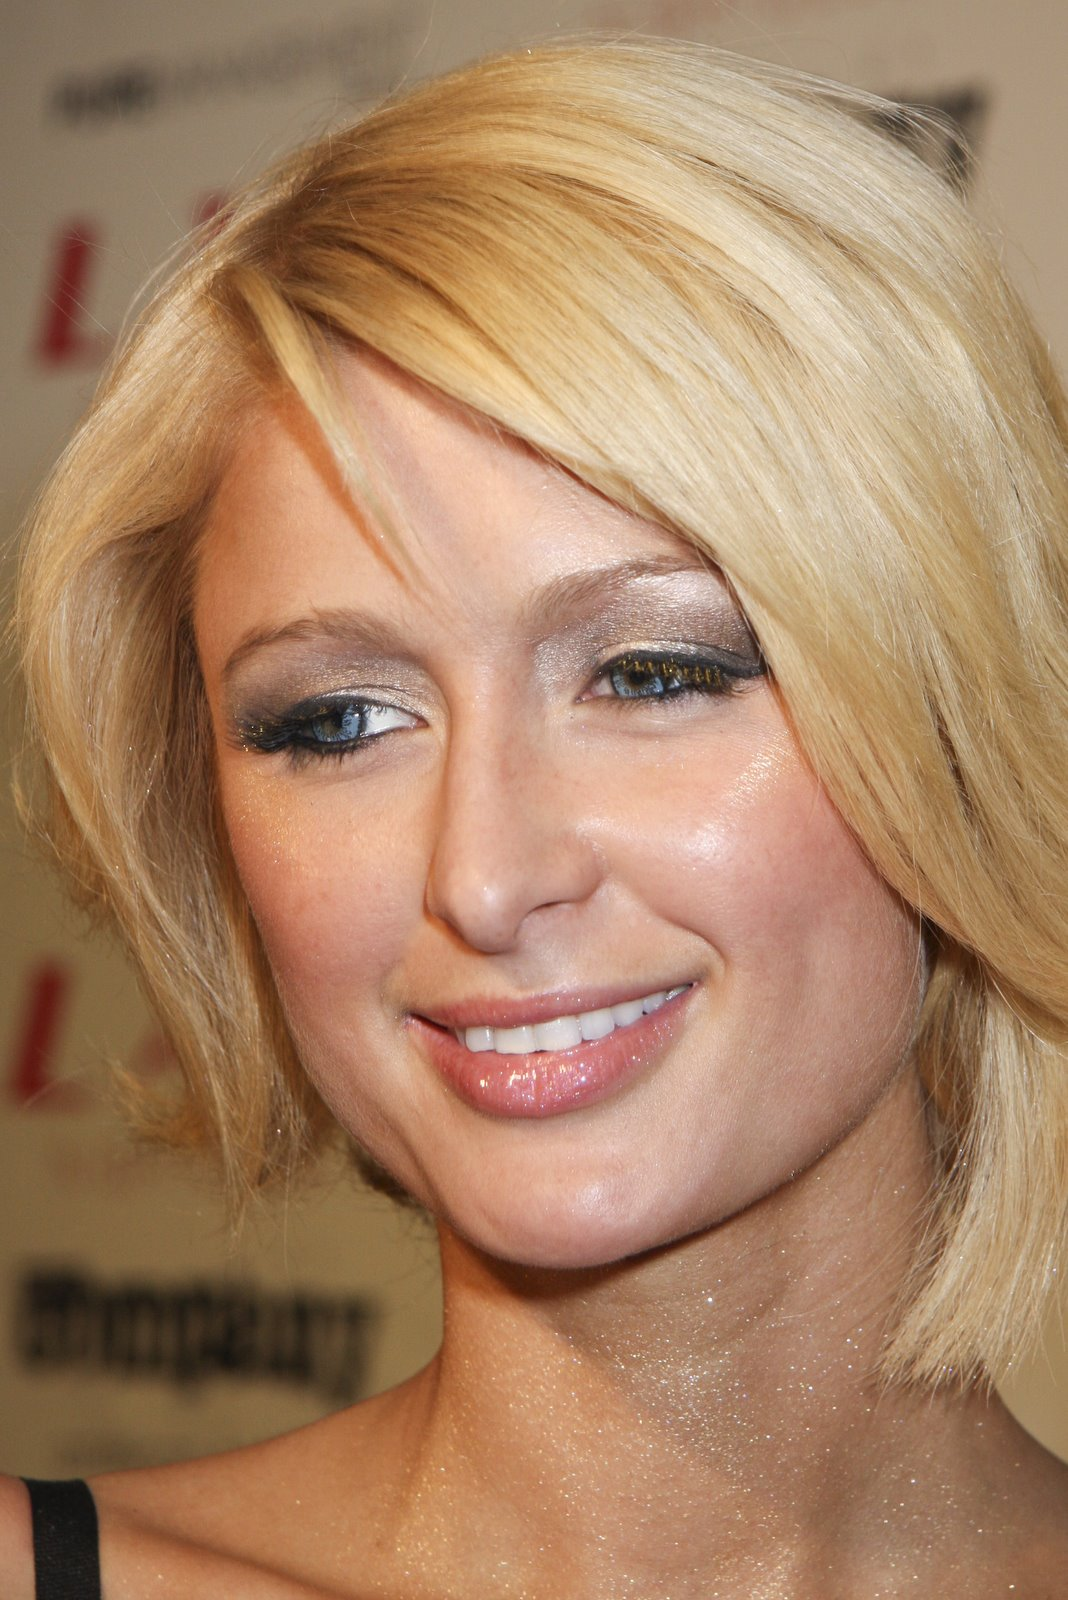 paris hilton latest Picture, paris hilton latest Pictures, paris hilton latest photos, paris hilton latest photo, paris hilton latest image, paris hilton news